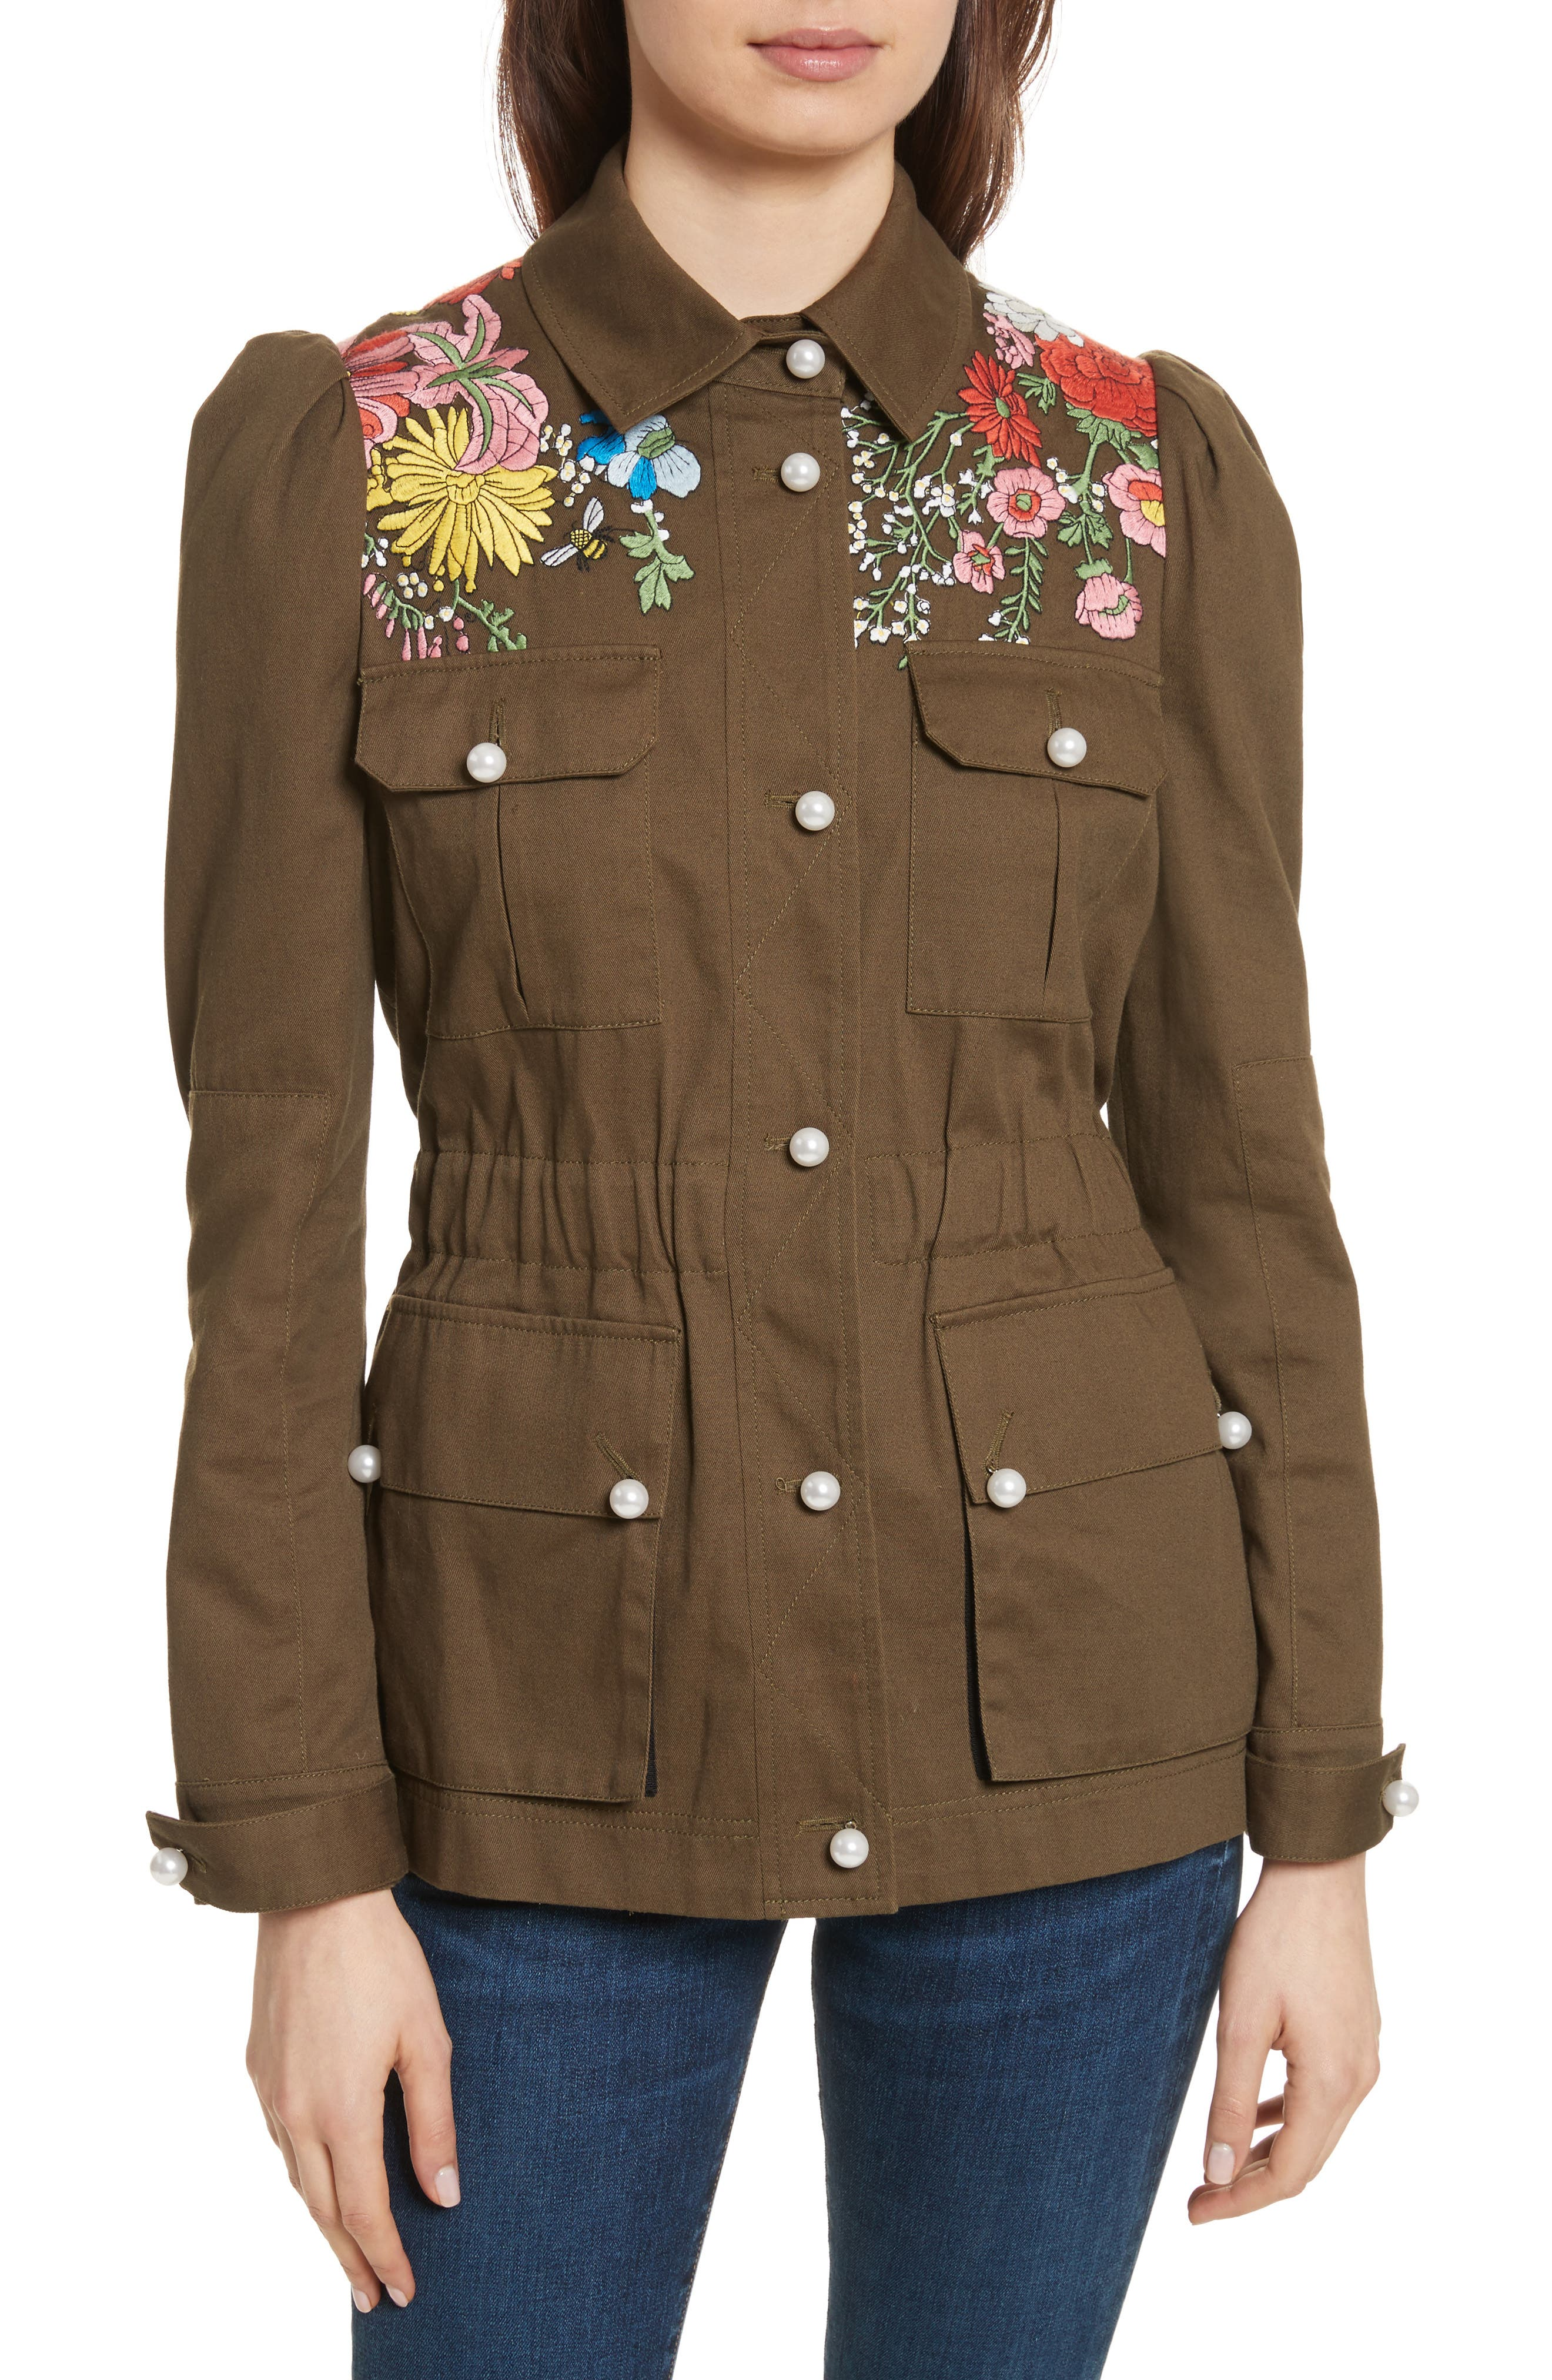 Alternate Image 1 Selected - Veronica Beard Huxley Floral Embroidered Safari Jacket